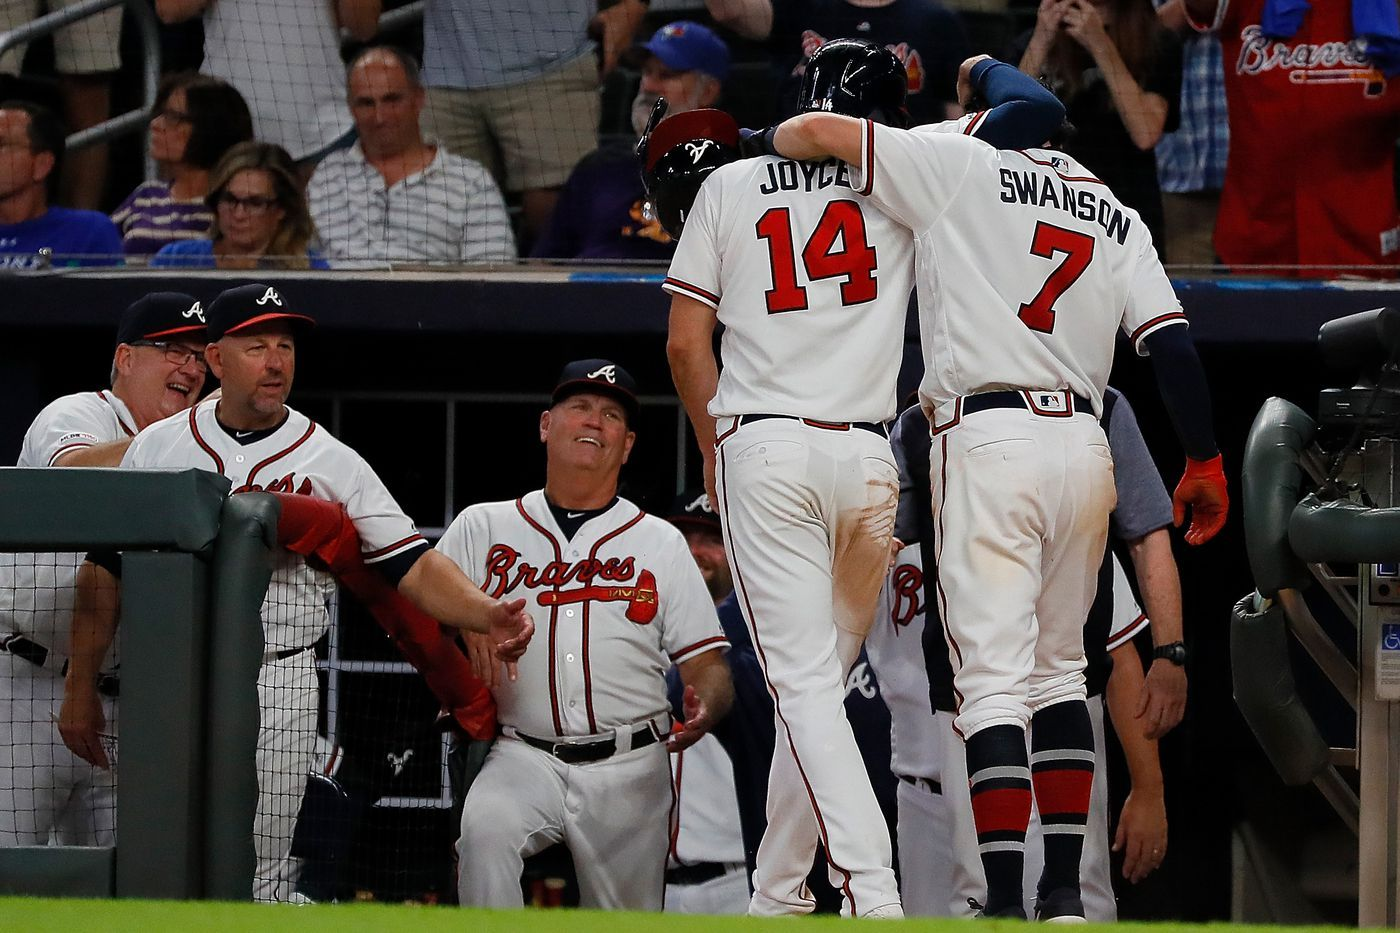 The 2019 Braves Are More Fun Than Your Favorite Team Atlanta Braves Braves Atlanta Braves Wallpaper